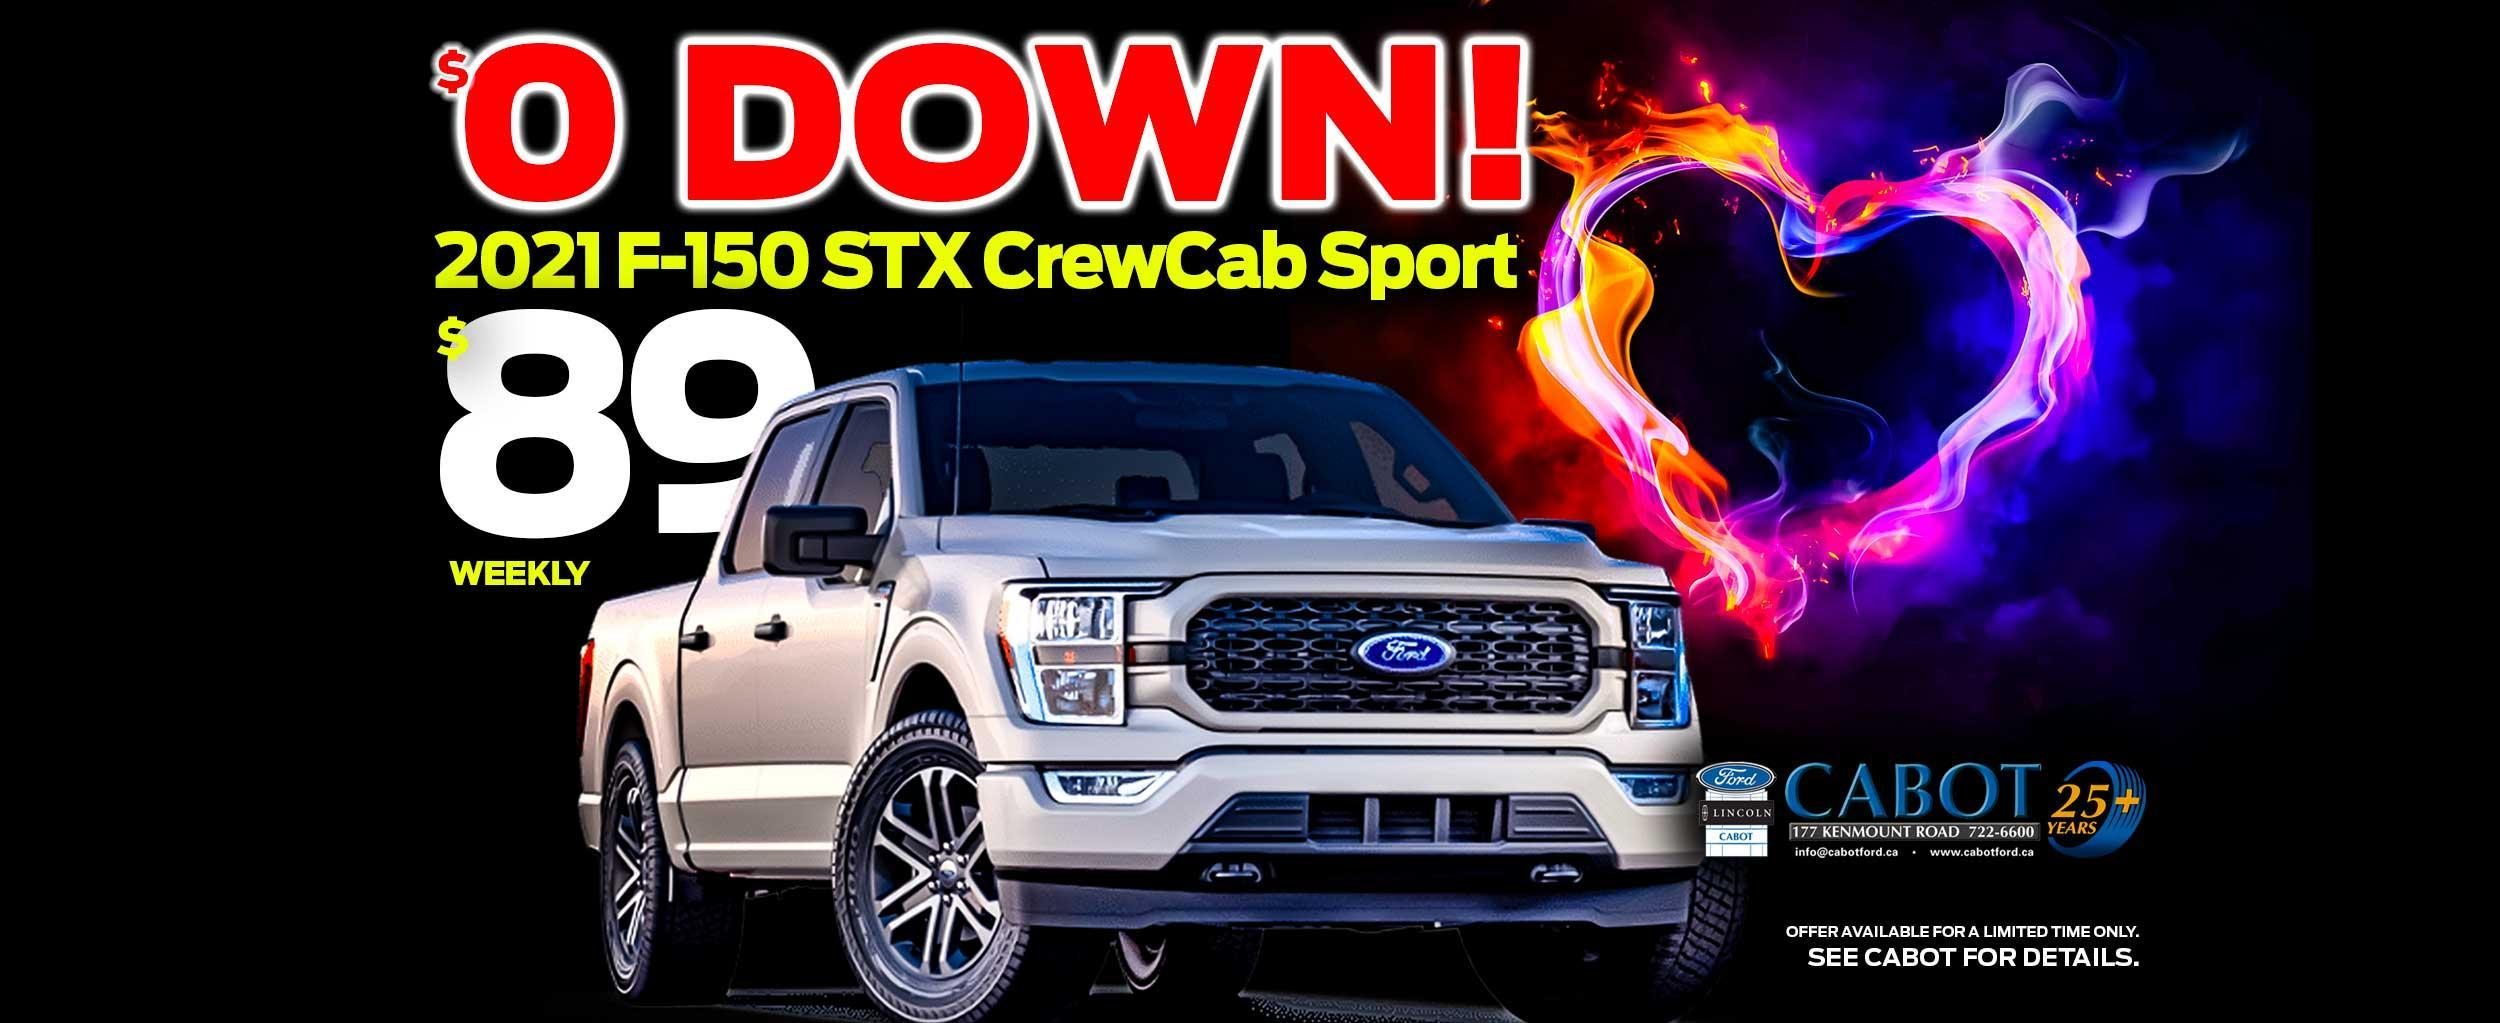 Get the 2021 F-150 STX CREWCAB SPORT for $0 DOWN AND JUST $89 weekly!